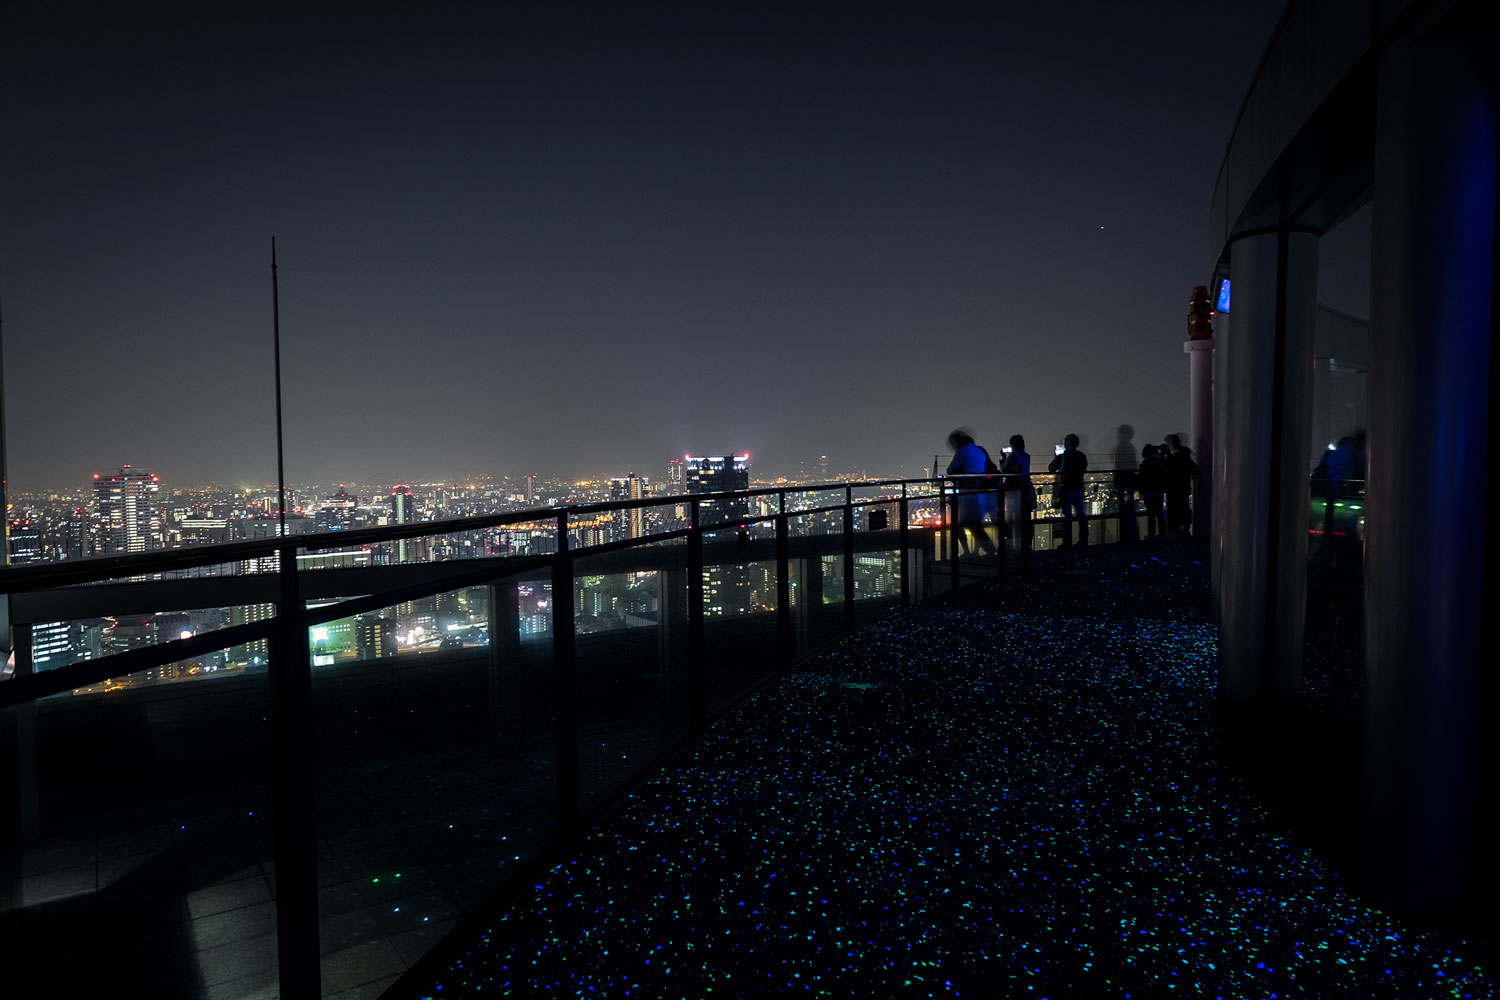 The observatory on top of the Umeda Sky Building